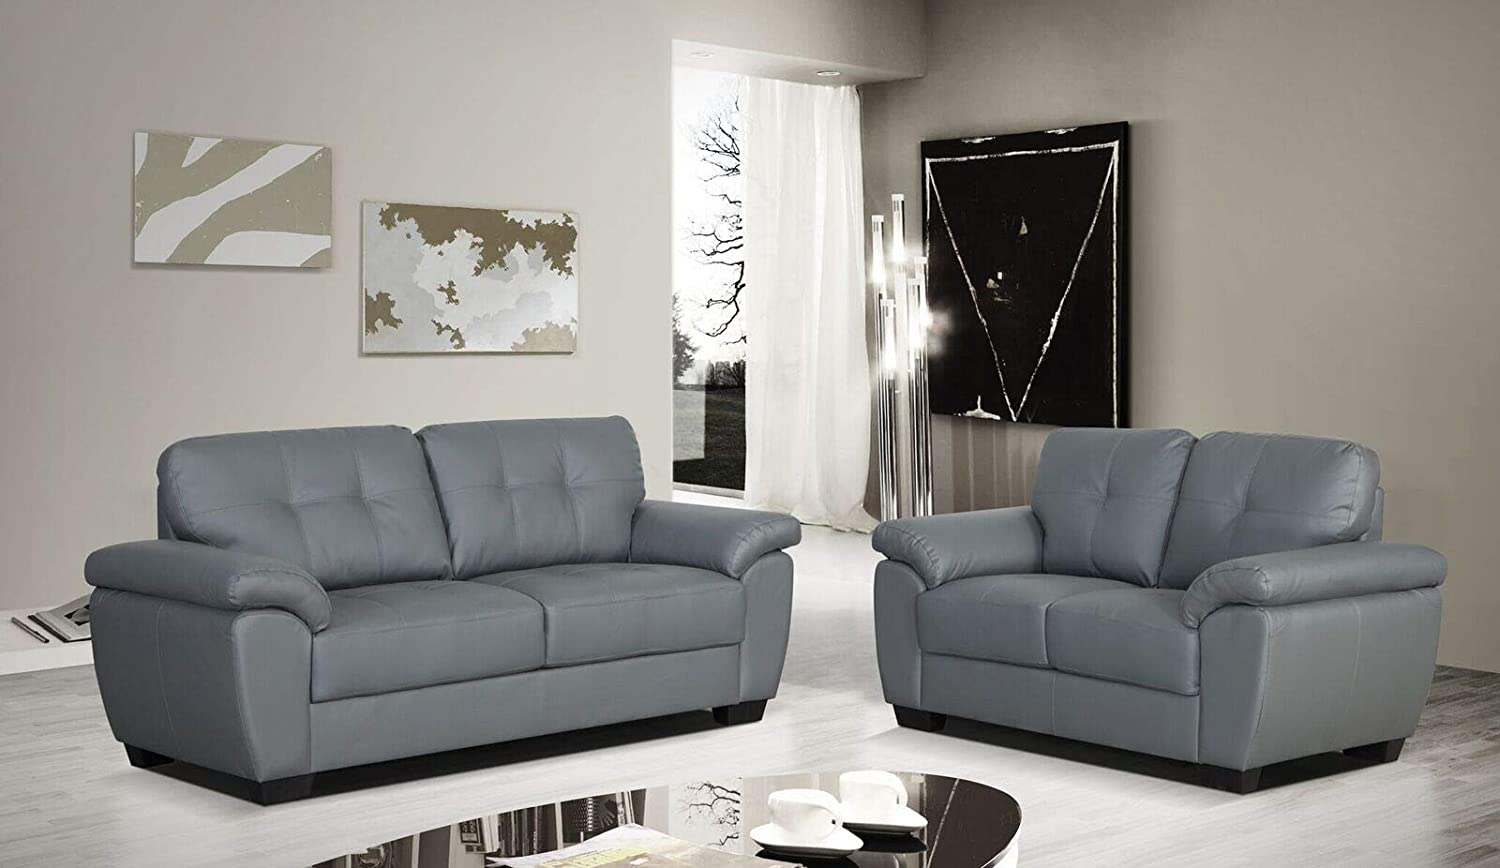 Swell Wedosofas Brisbane 3 2 Sofa Set Premium Bonded Leather In Ocoug Best Dining Table And Chair Ideas Images Ocougorg